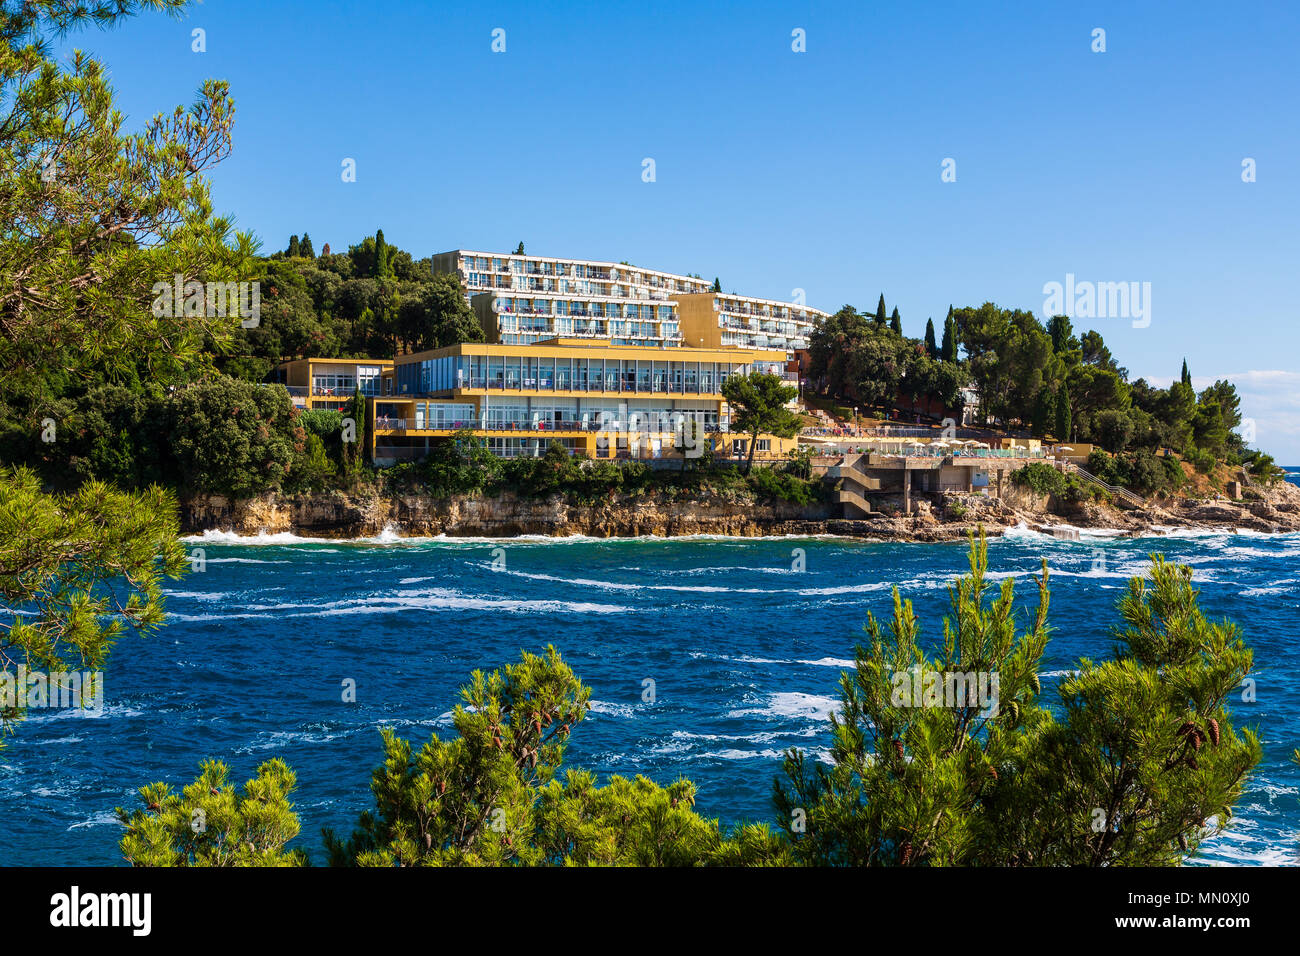 Splendid resort, Pula, Croatia - Stock Image